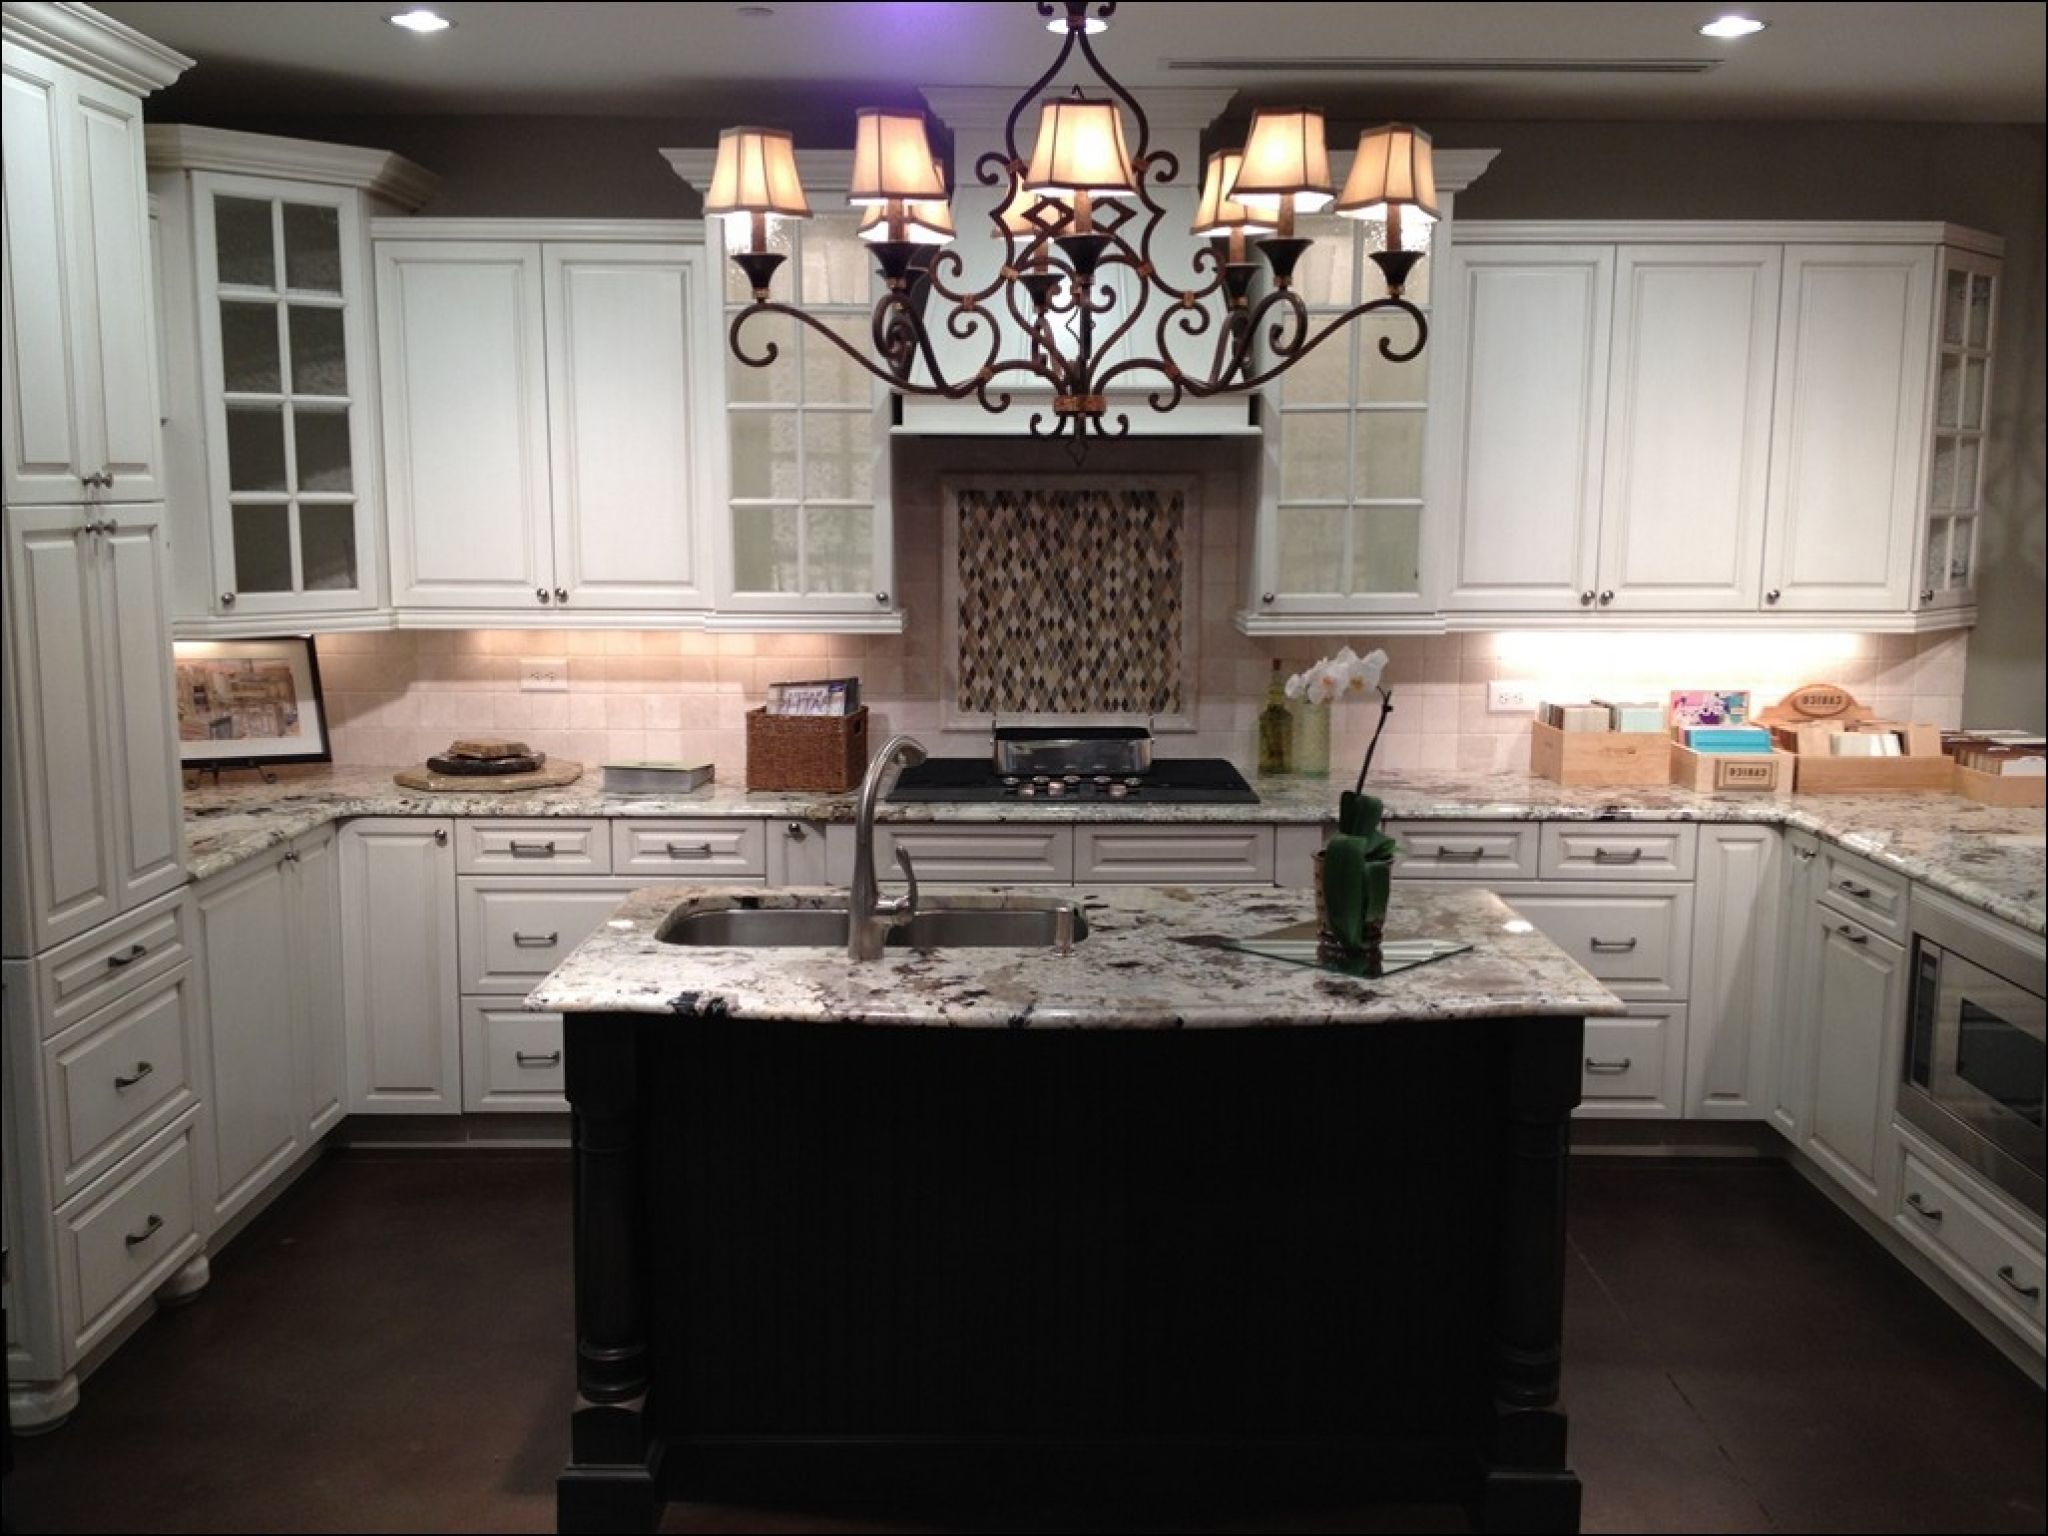 used metal kitchen cabinets for sale - kitchen trash can ideas Check more at  & used metal kitchen cabinets for sale - kitchen trash can ideas Check ...